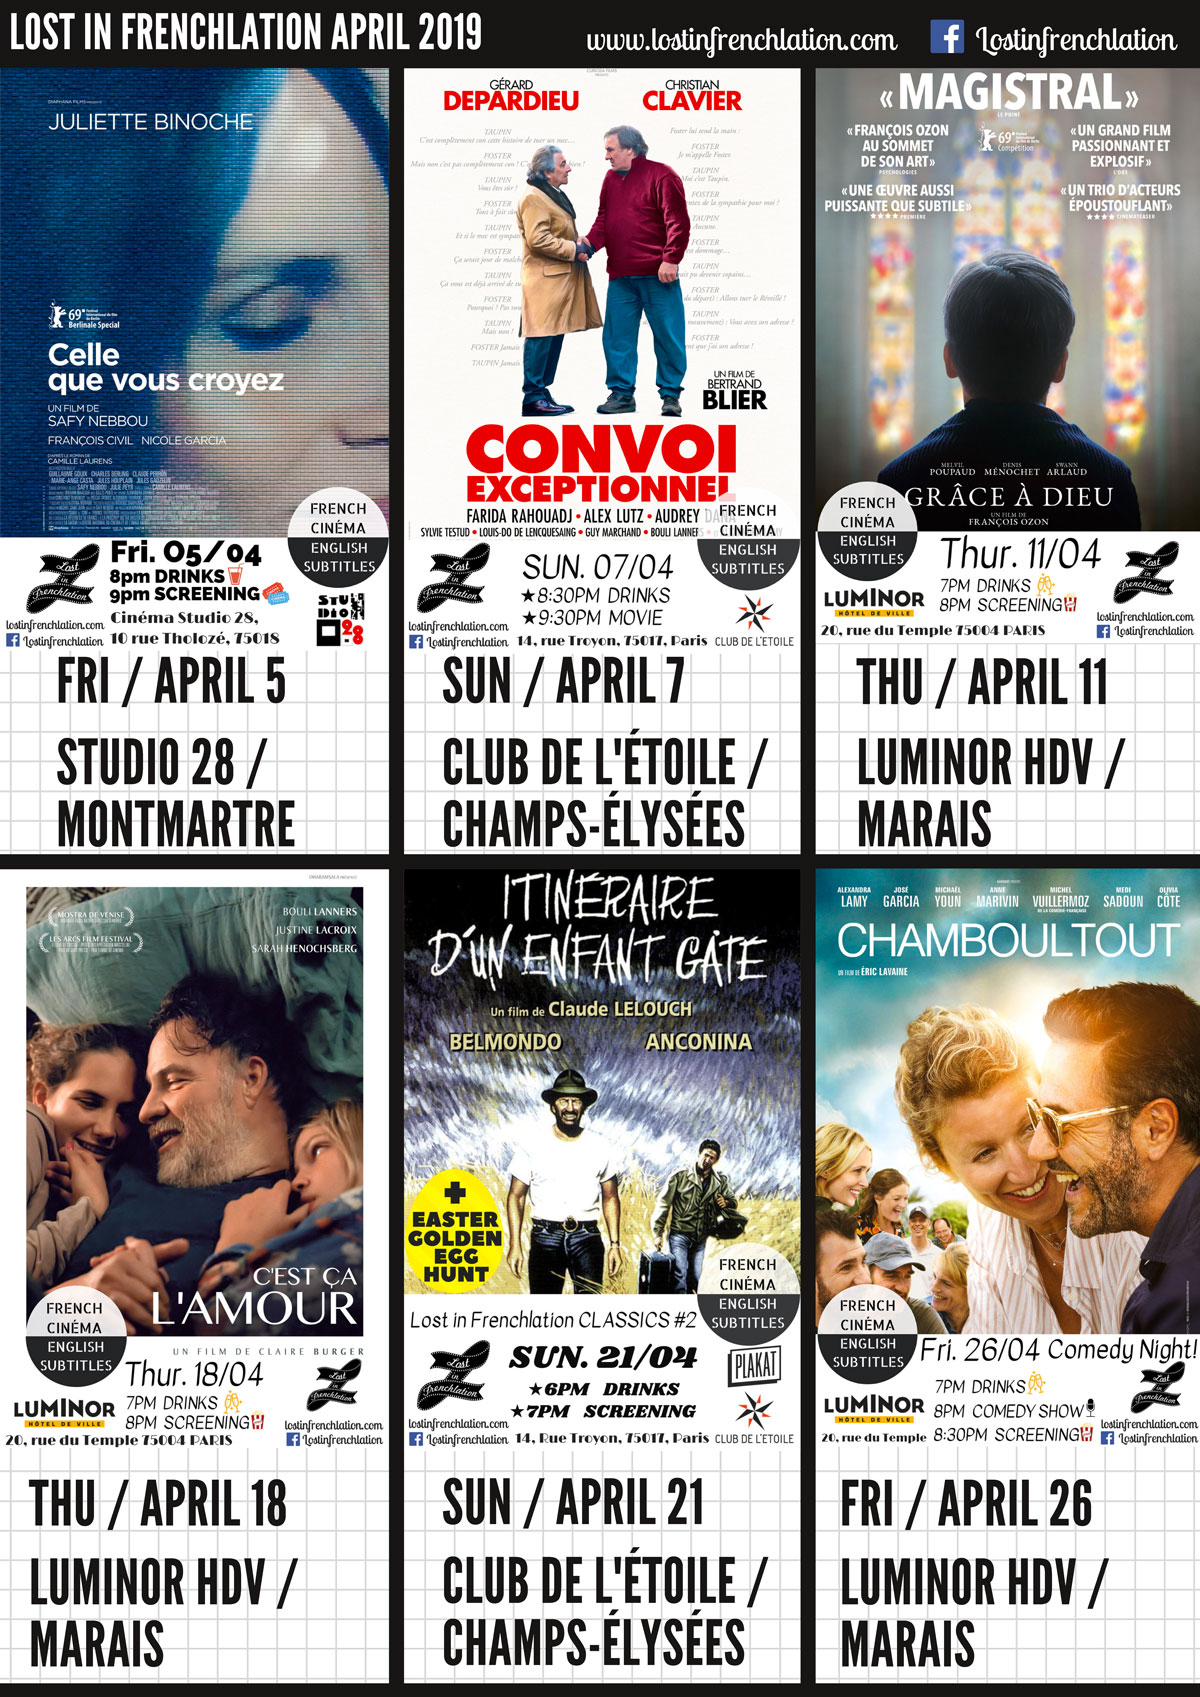 Lost in Frenchlation April Events!